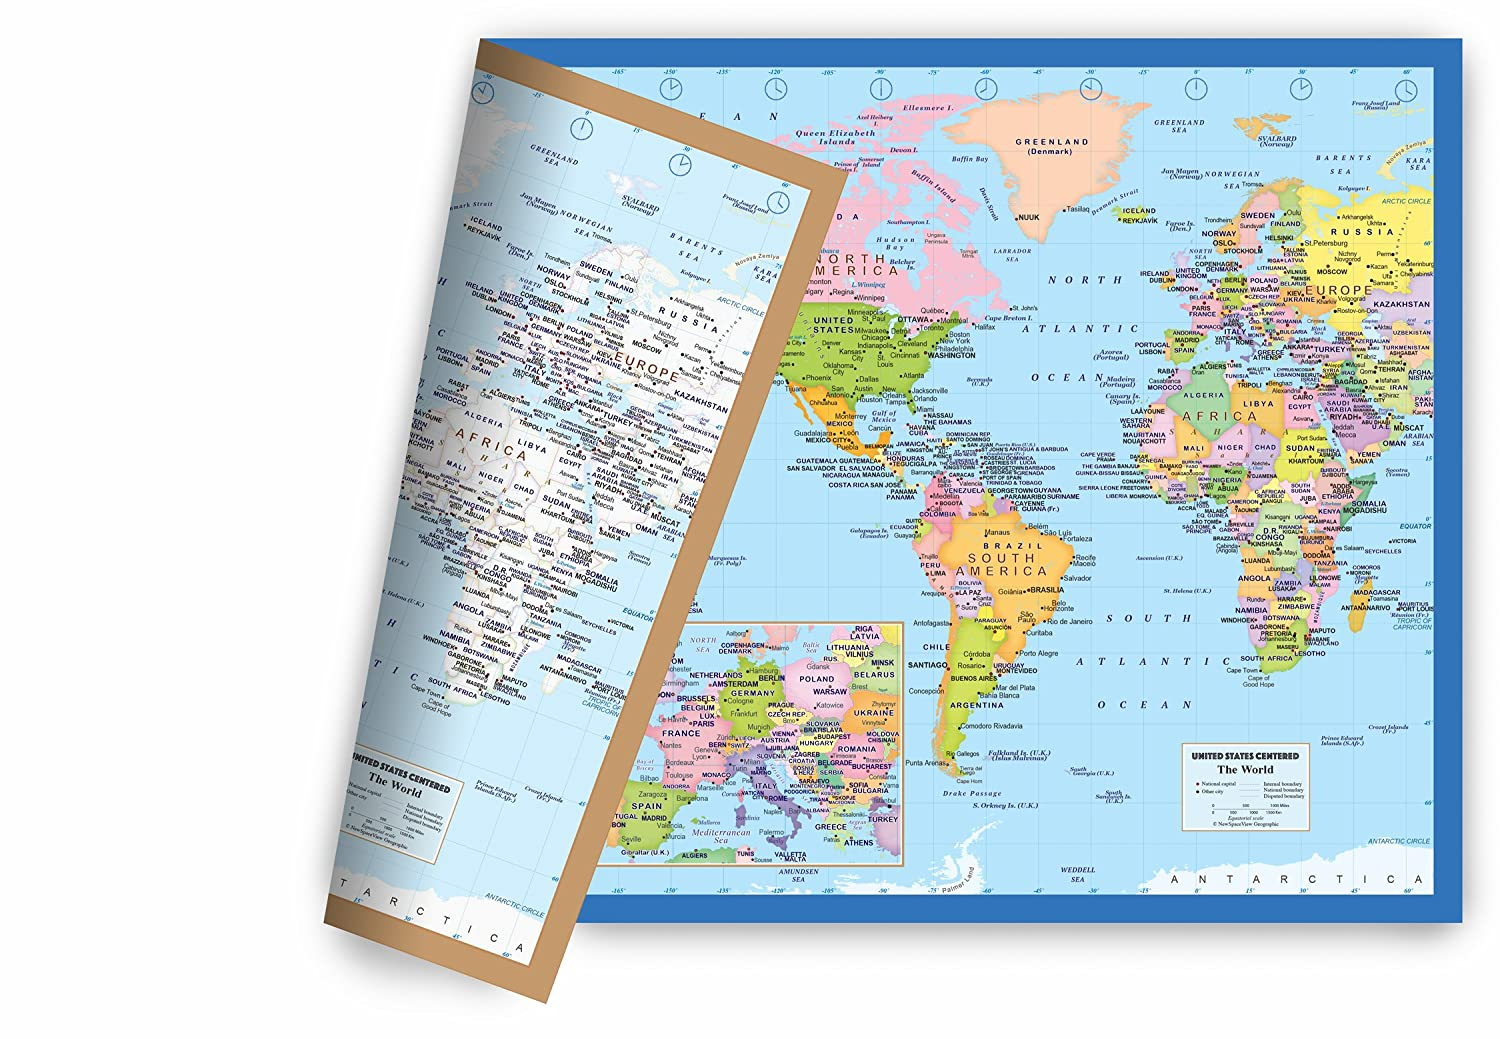 Amazon.com : World Map Small Poster Size 11.5 x 17.5 inches, 2-Sided ...